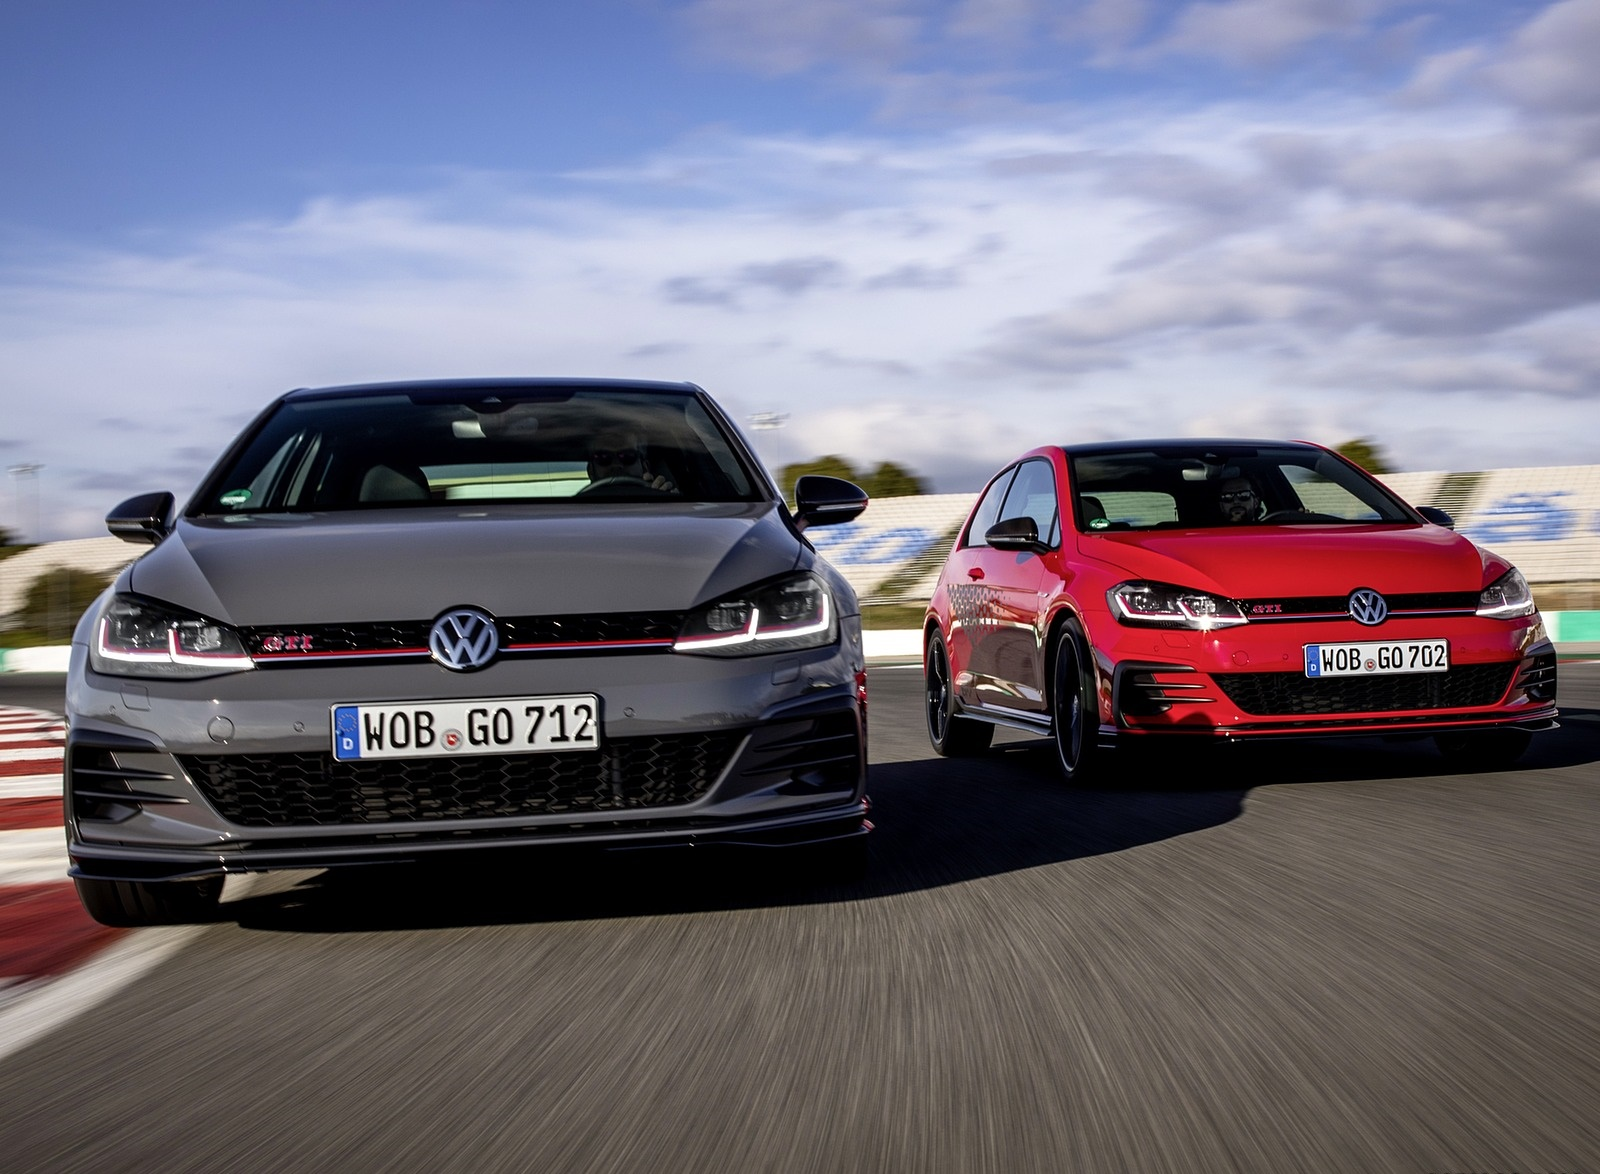 2019 Volkswagen Golf Gti Tcr Wallpapers 75 Hd Images Newcarcars